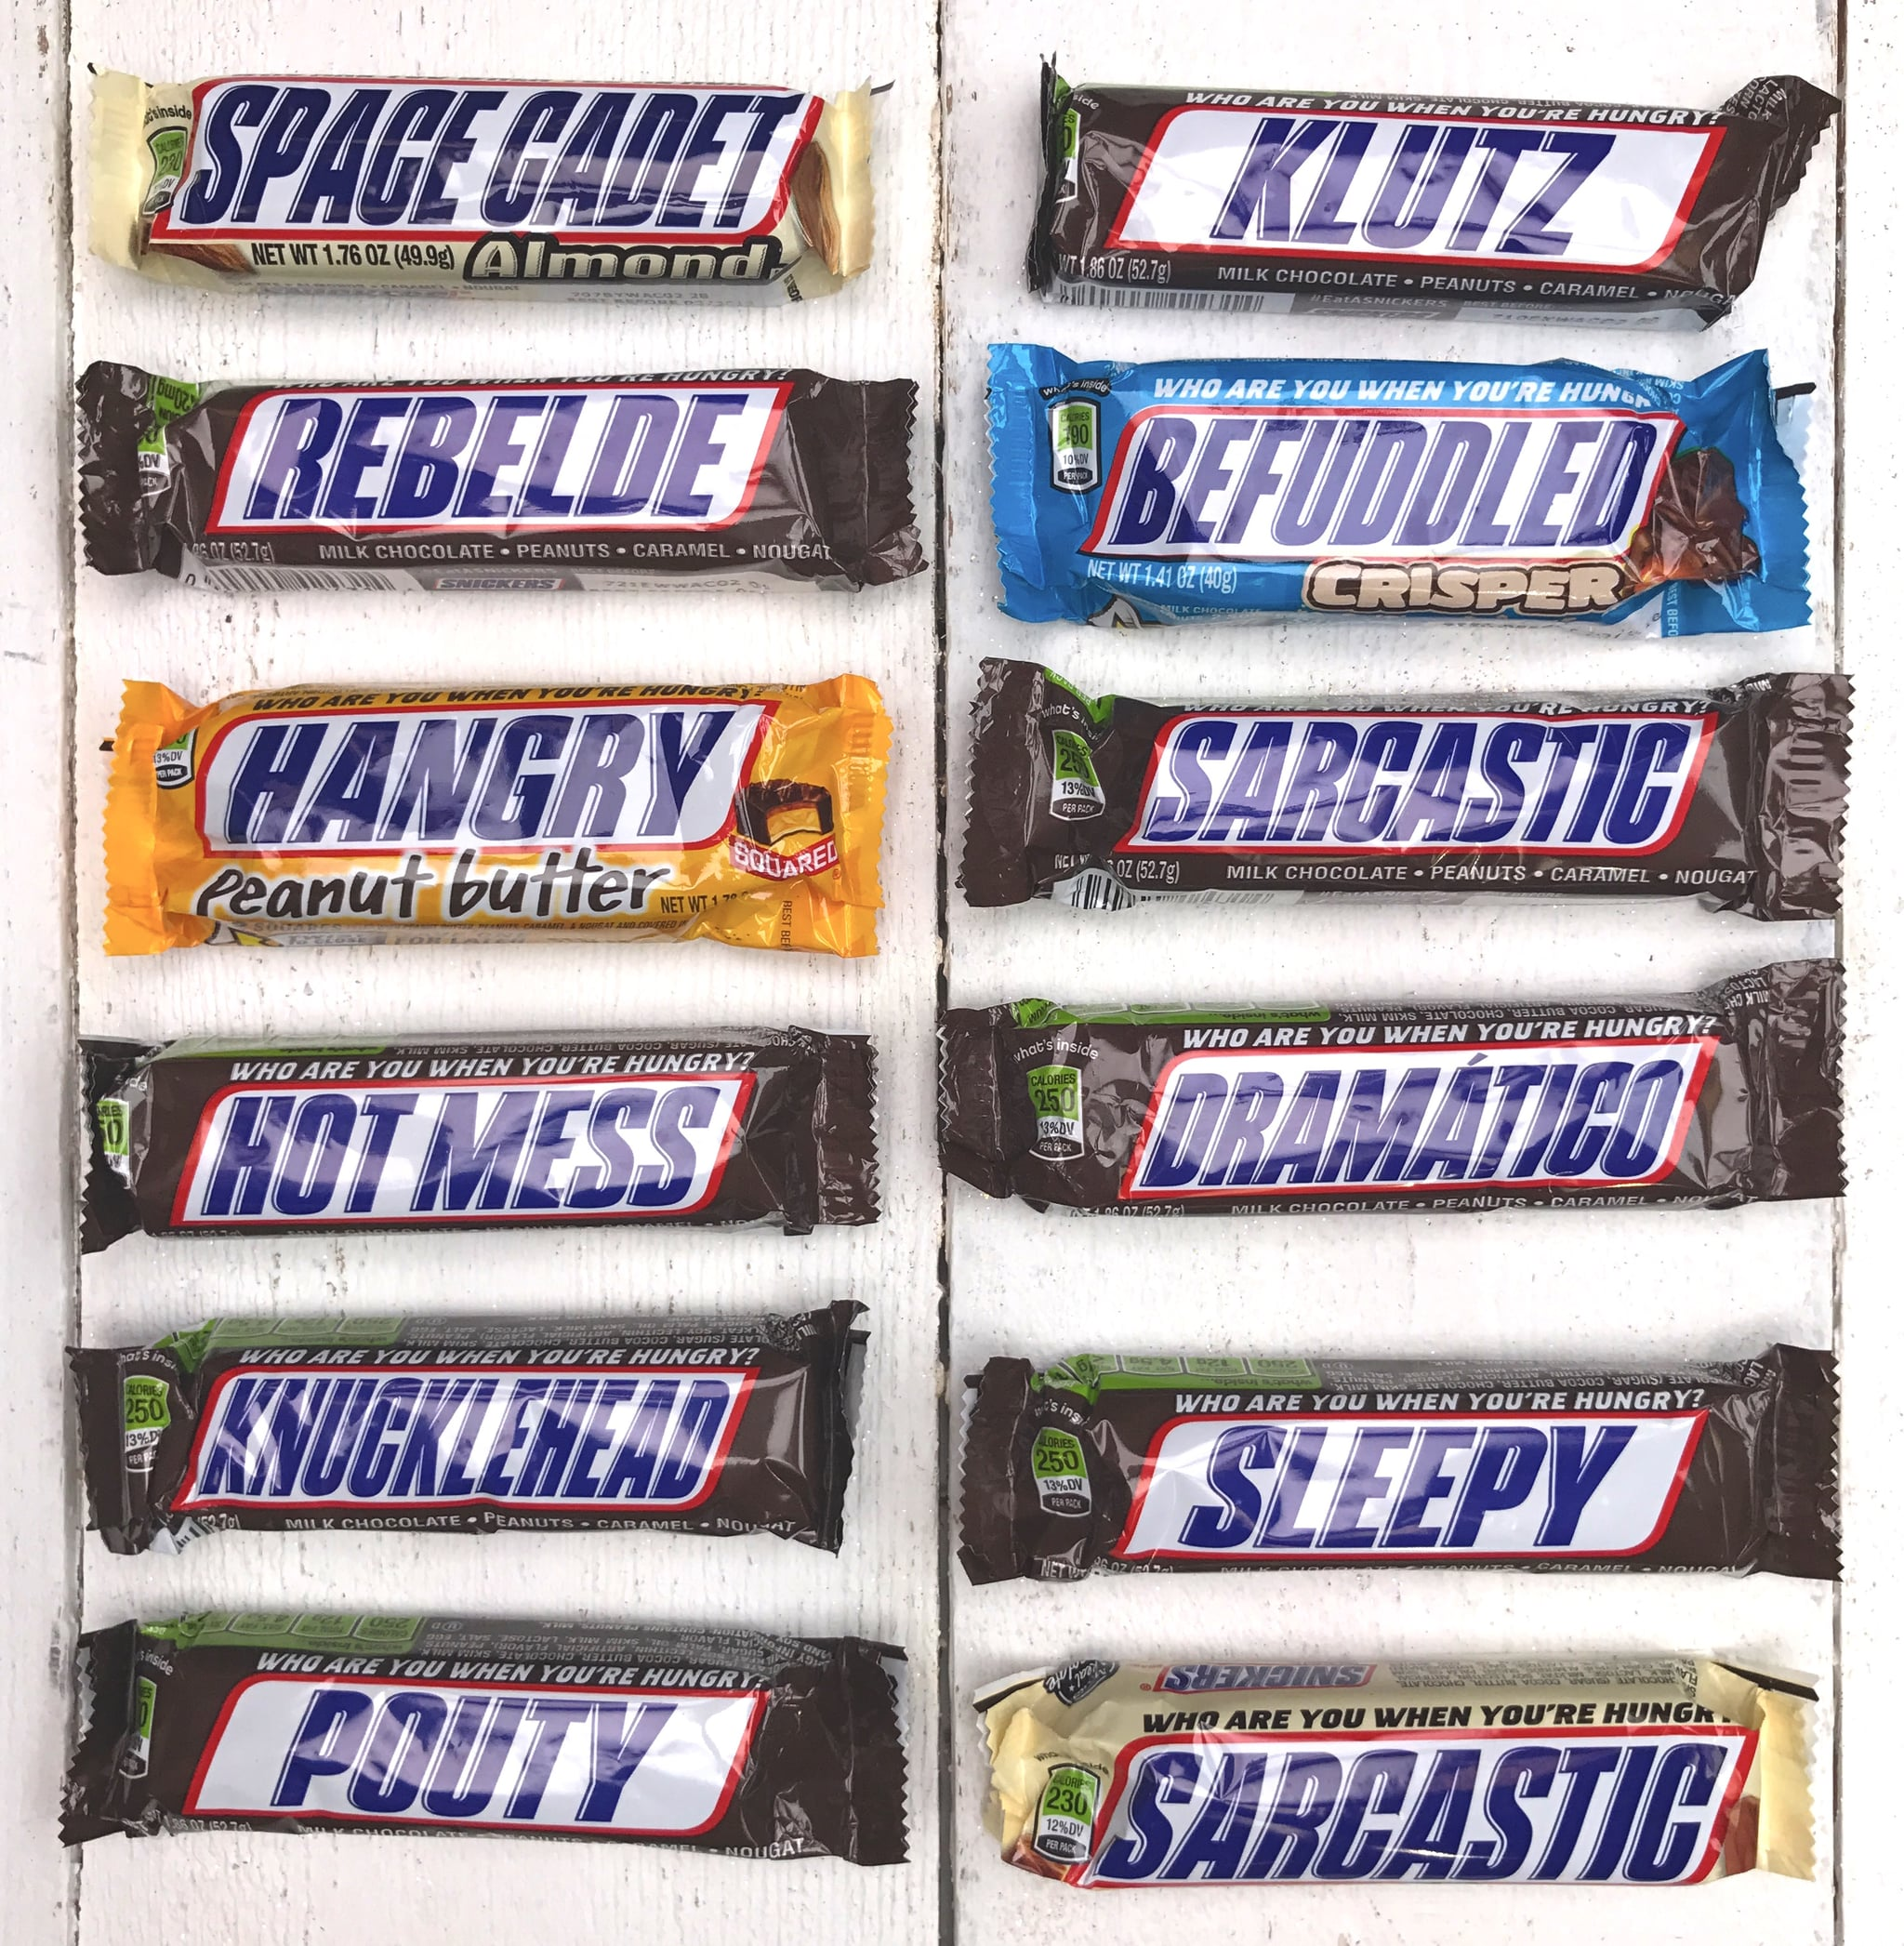 New Snarky Snickers Captions Capture Every Feeling ...